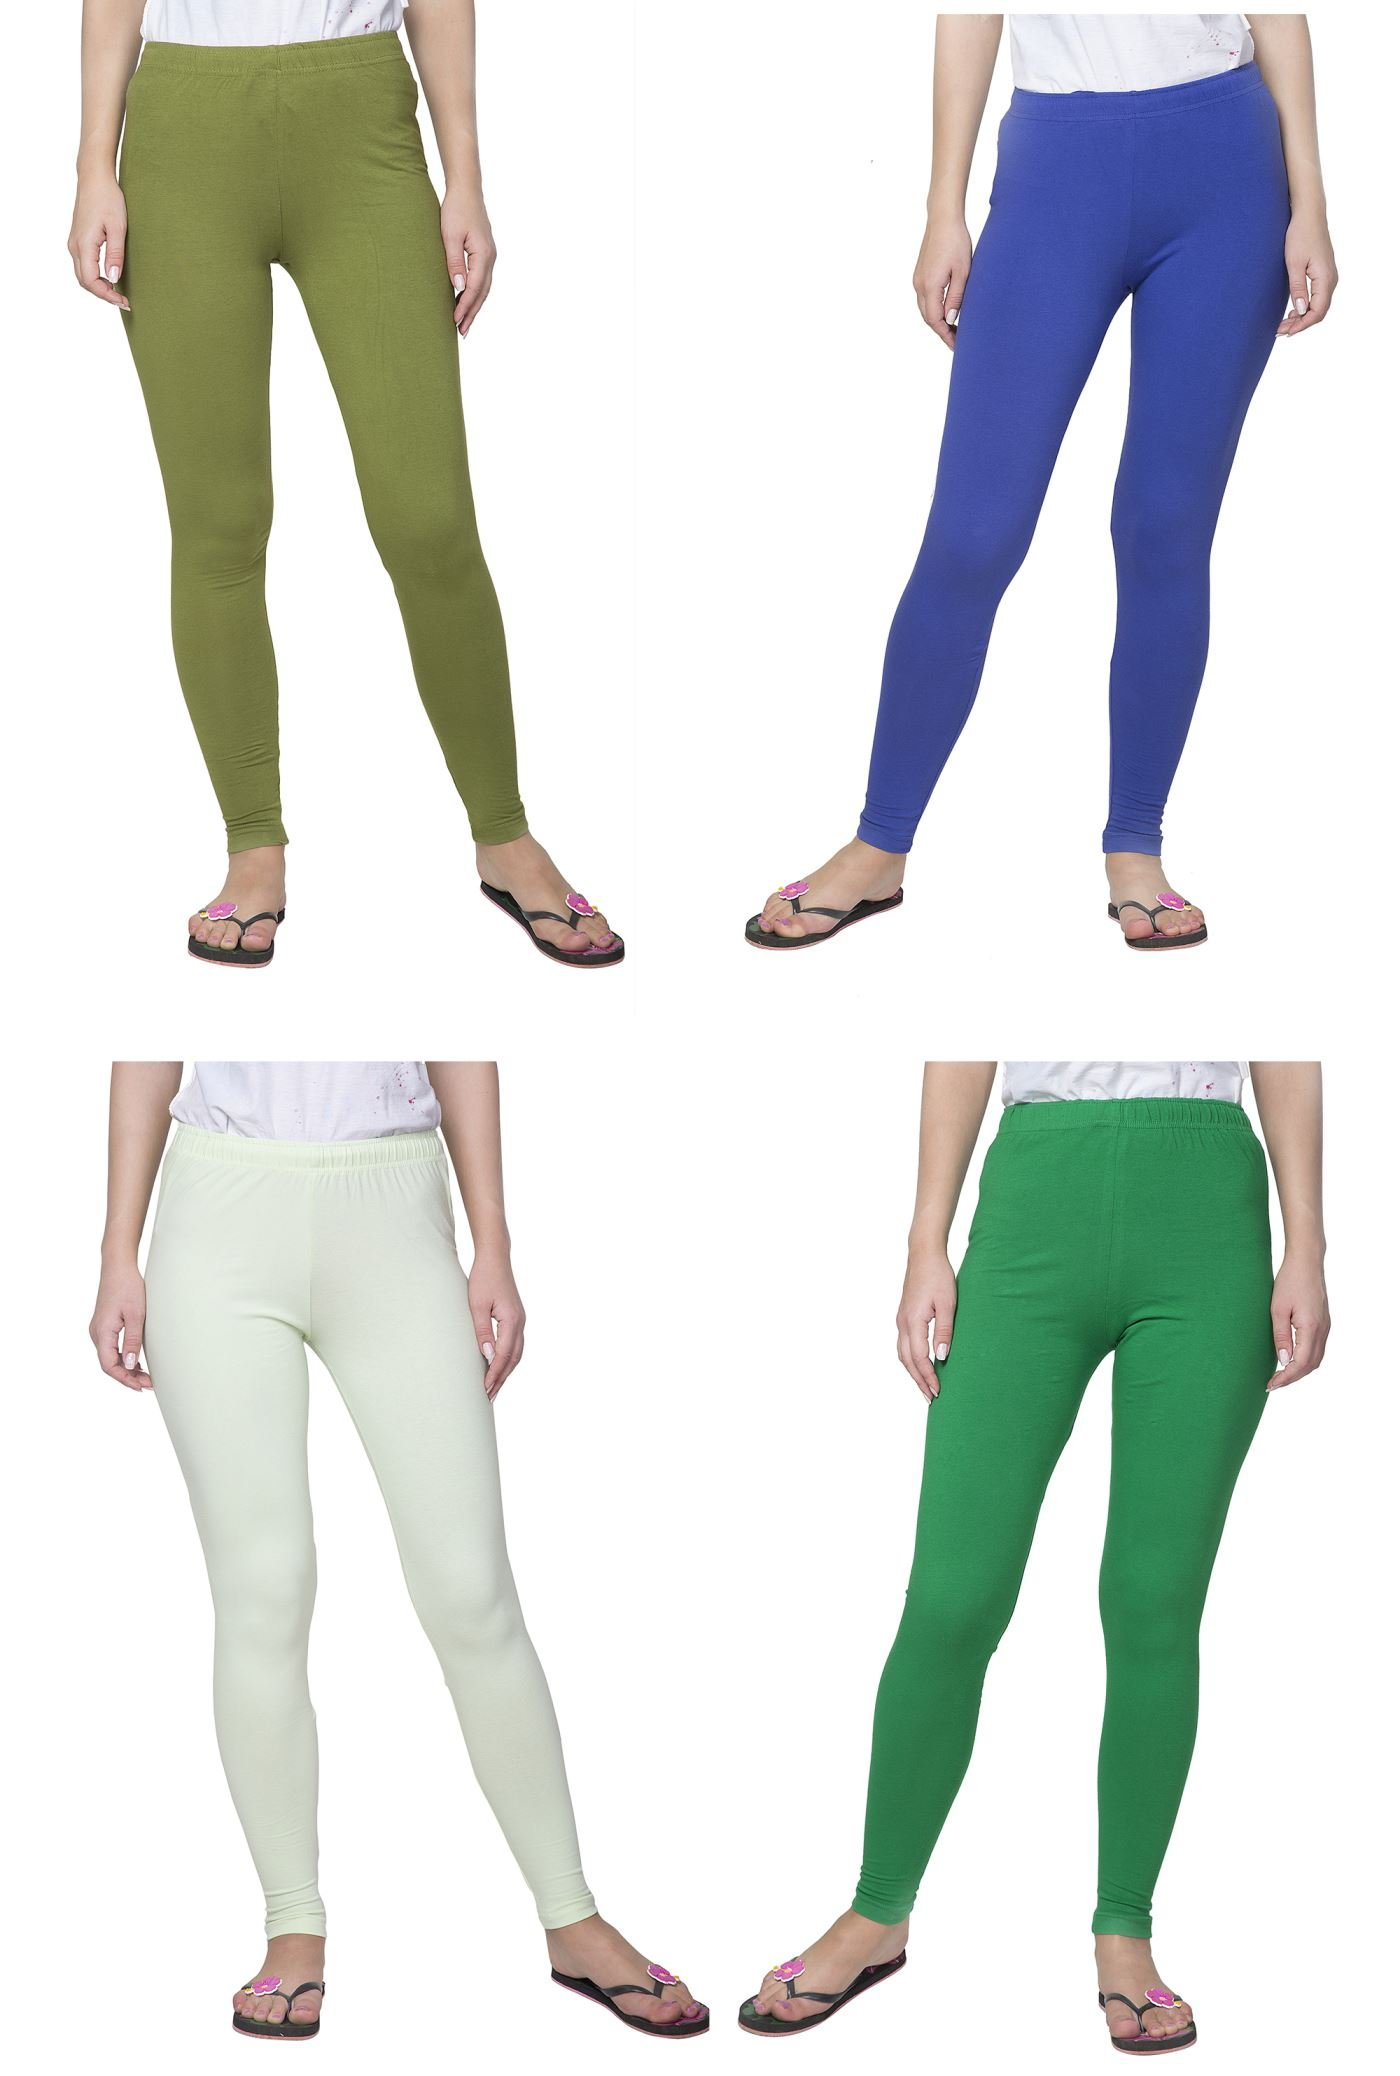 Clifton Women's Cotton Spandex Fine Jersey Leggings Pack Of 4-Assorted-3-6XL